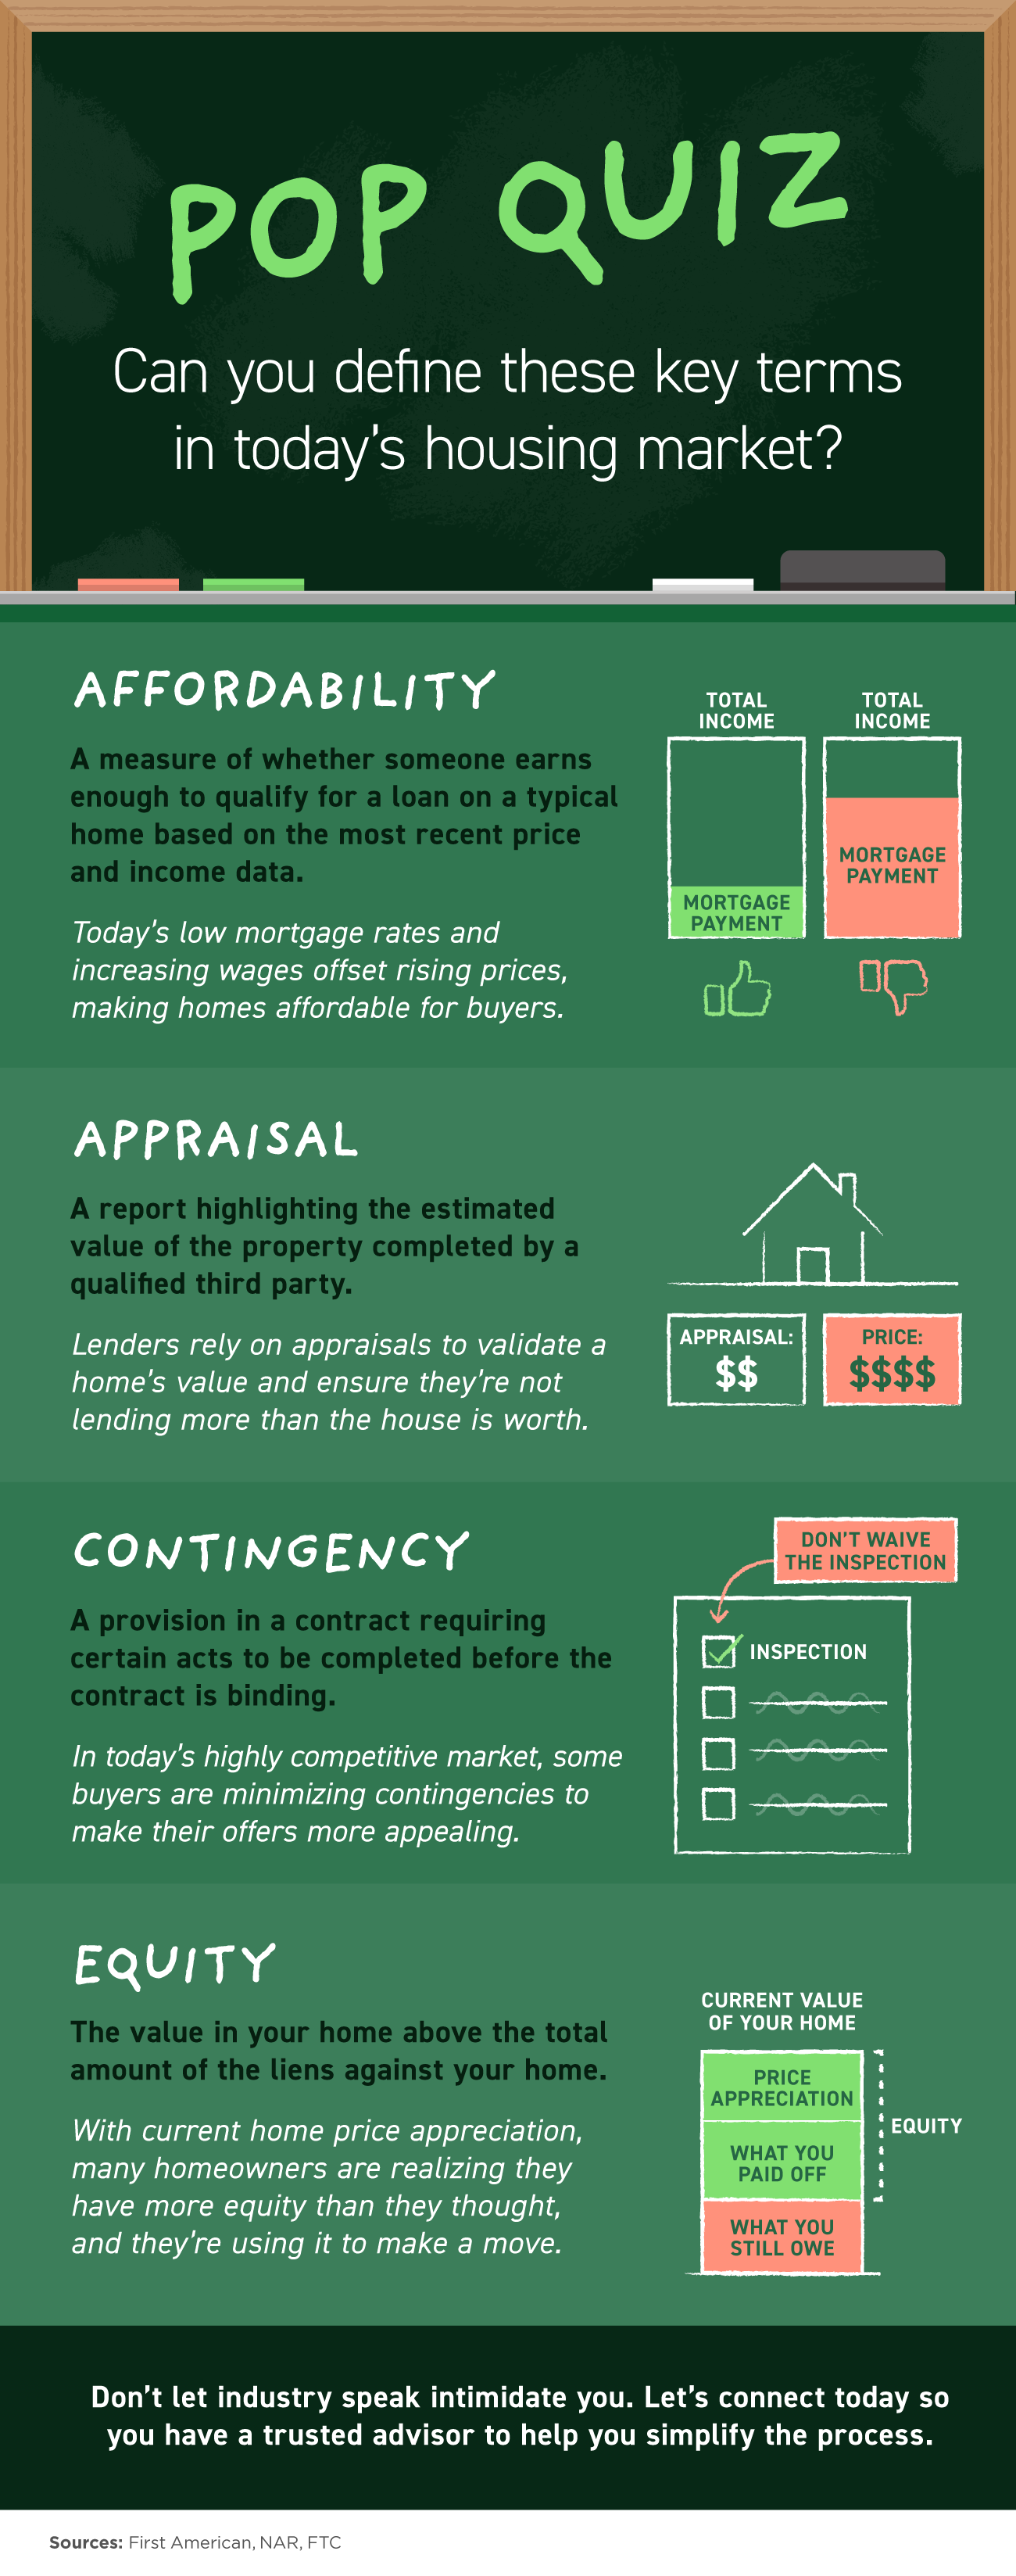 Pop Quiz: Can You Define These Key Terms in Today's Housing Market? [INFOGRAPHIC] | Bridge Builders